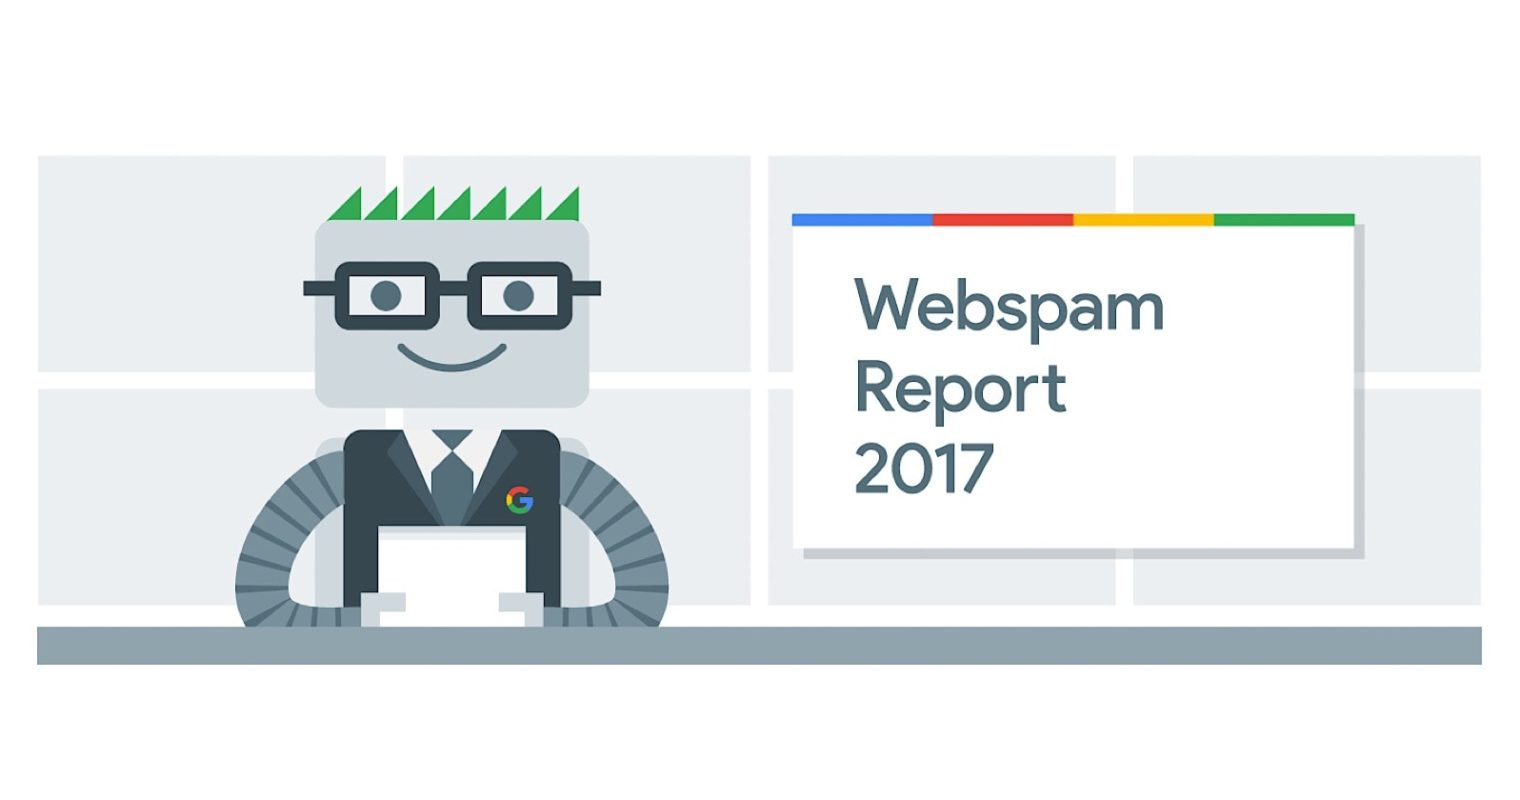 Google Has Reduced Amount of Spammy Links by Nearly Half